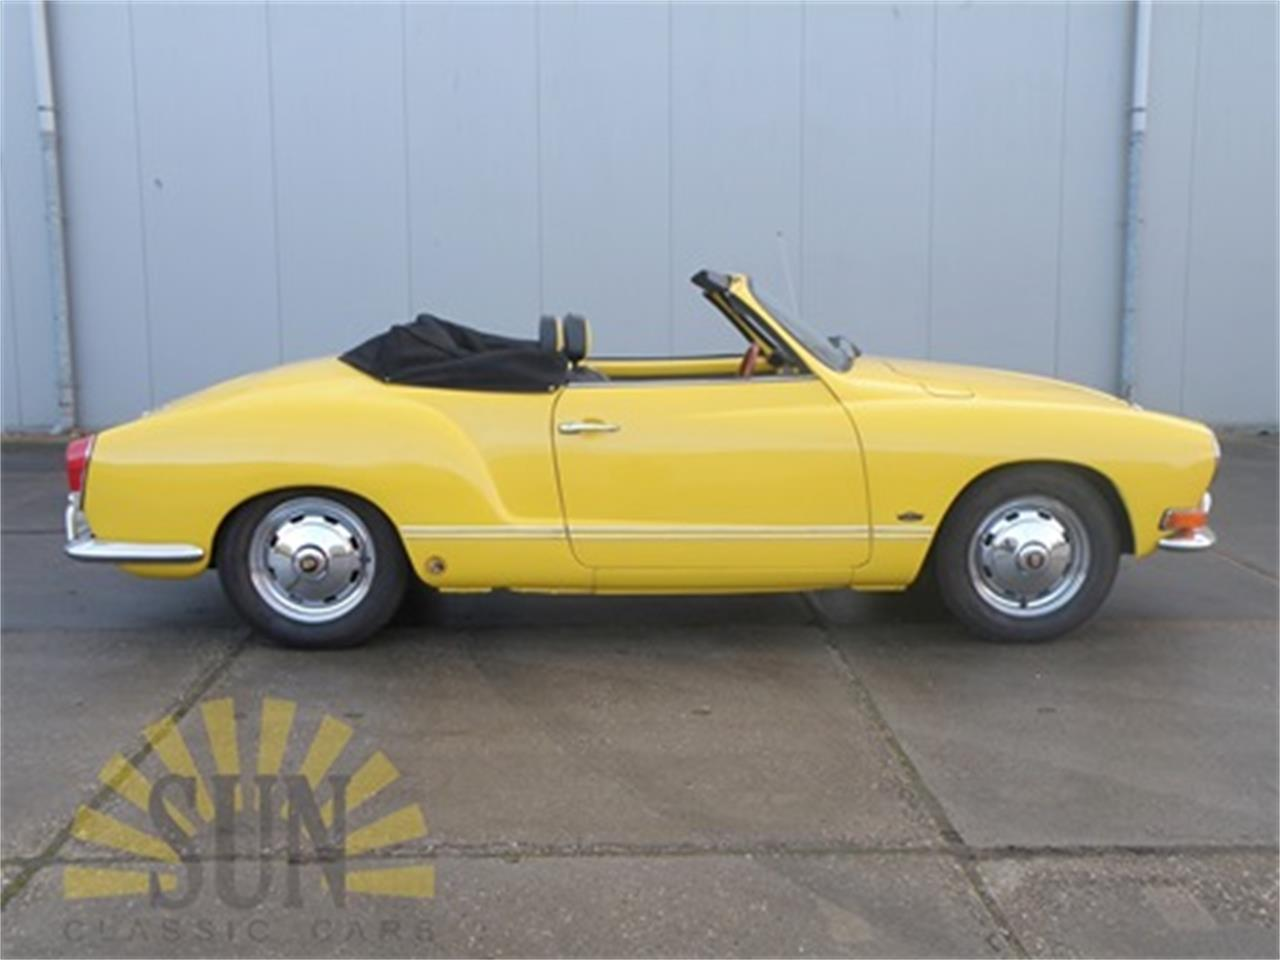 Large Picture of '71 Volkswagen Karmann Ghia located in Waalwijk Noord Brabant - $19,050.00 Offered by E & R Classics - MNPJ